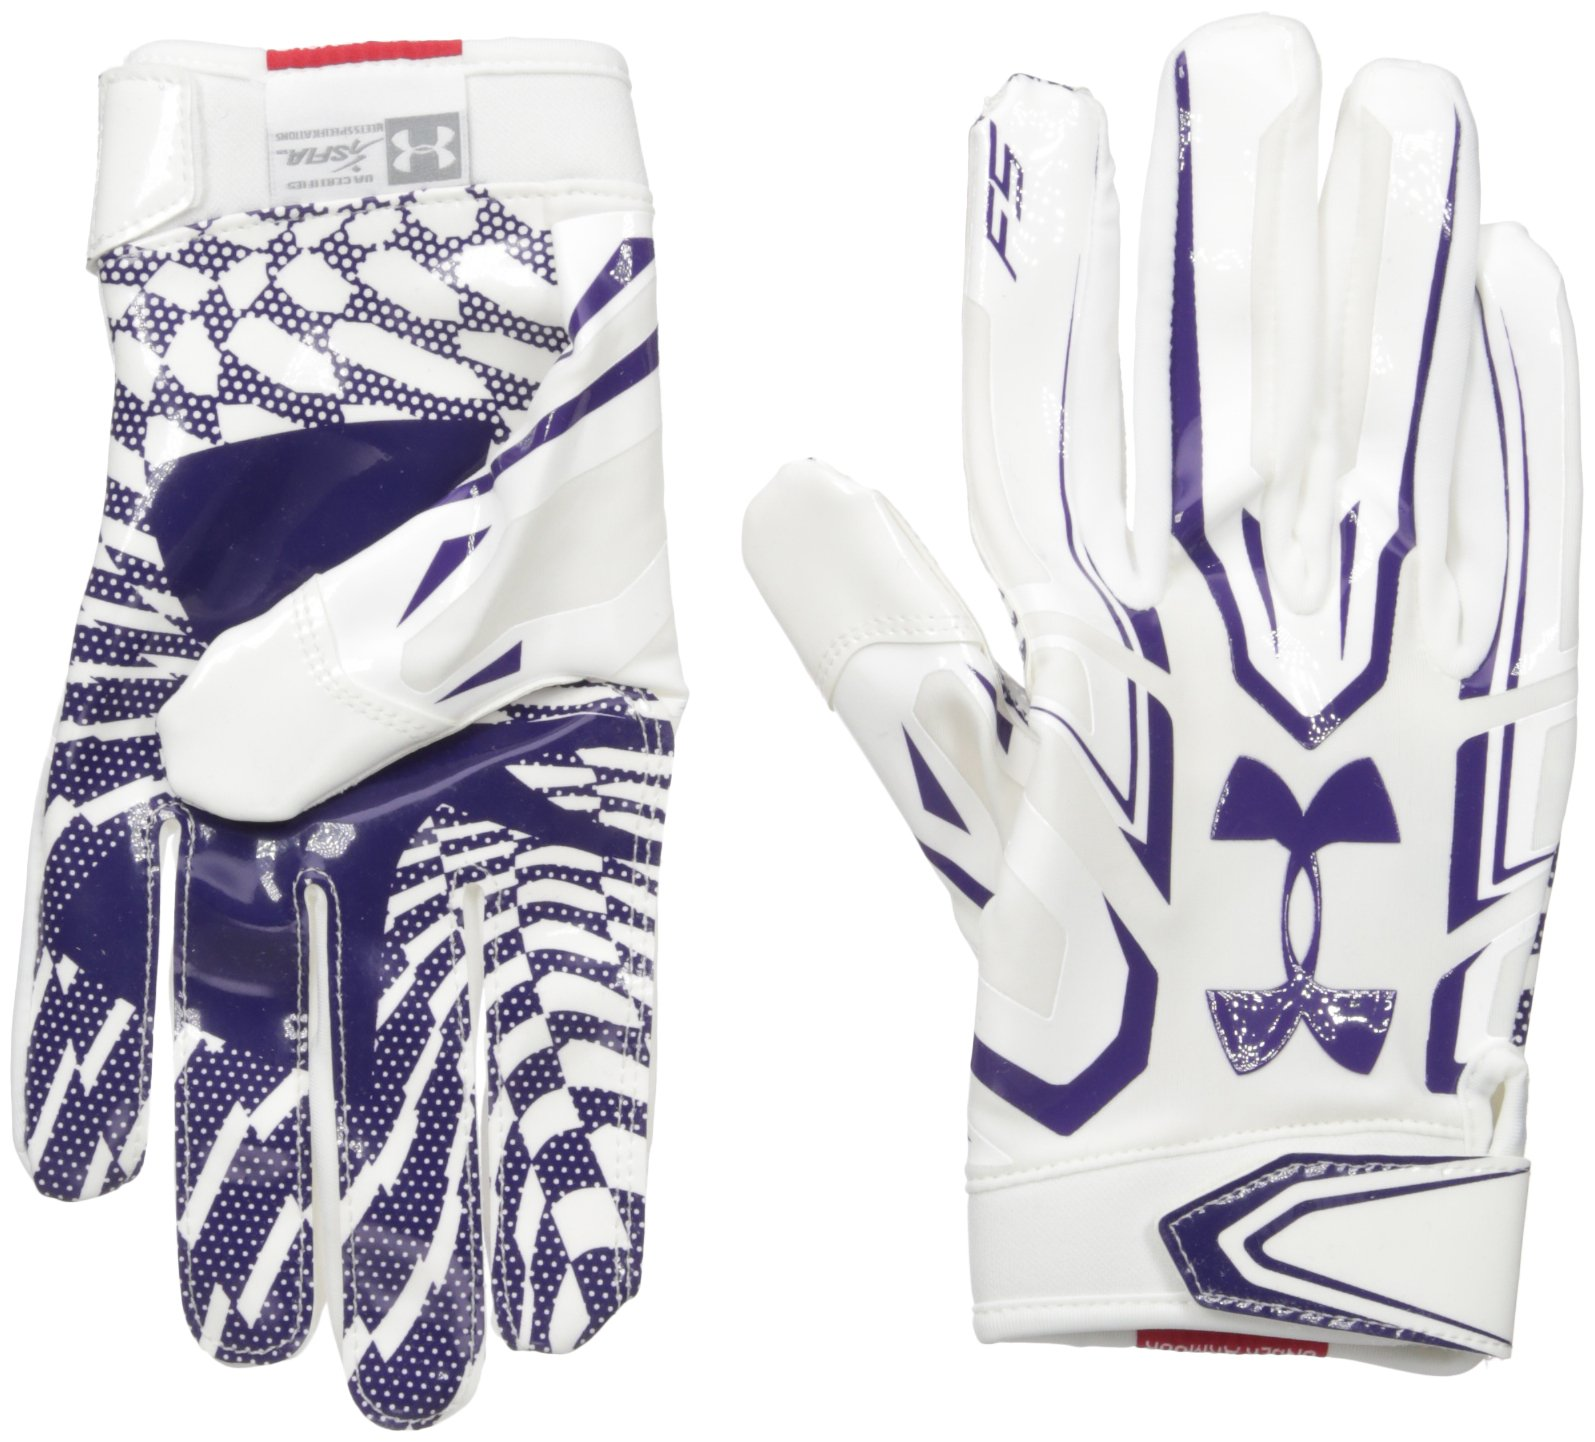 Under Armour Mens F5 Football Gloves, White/Purple, Small by Under Armour (Image #1)